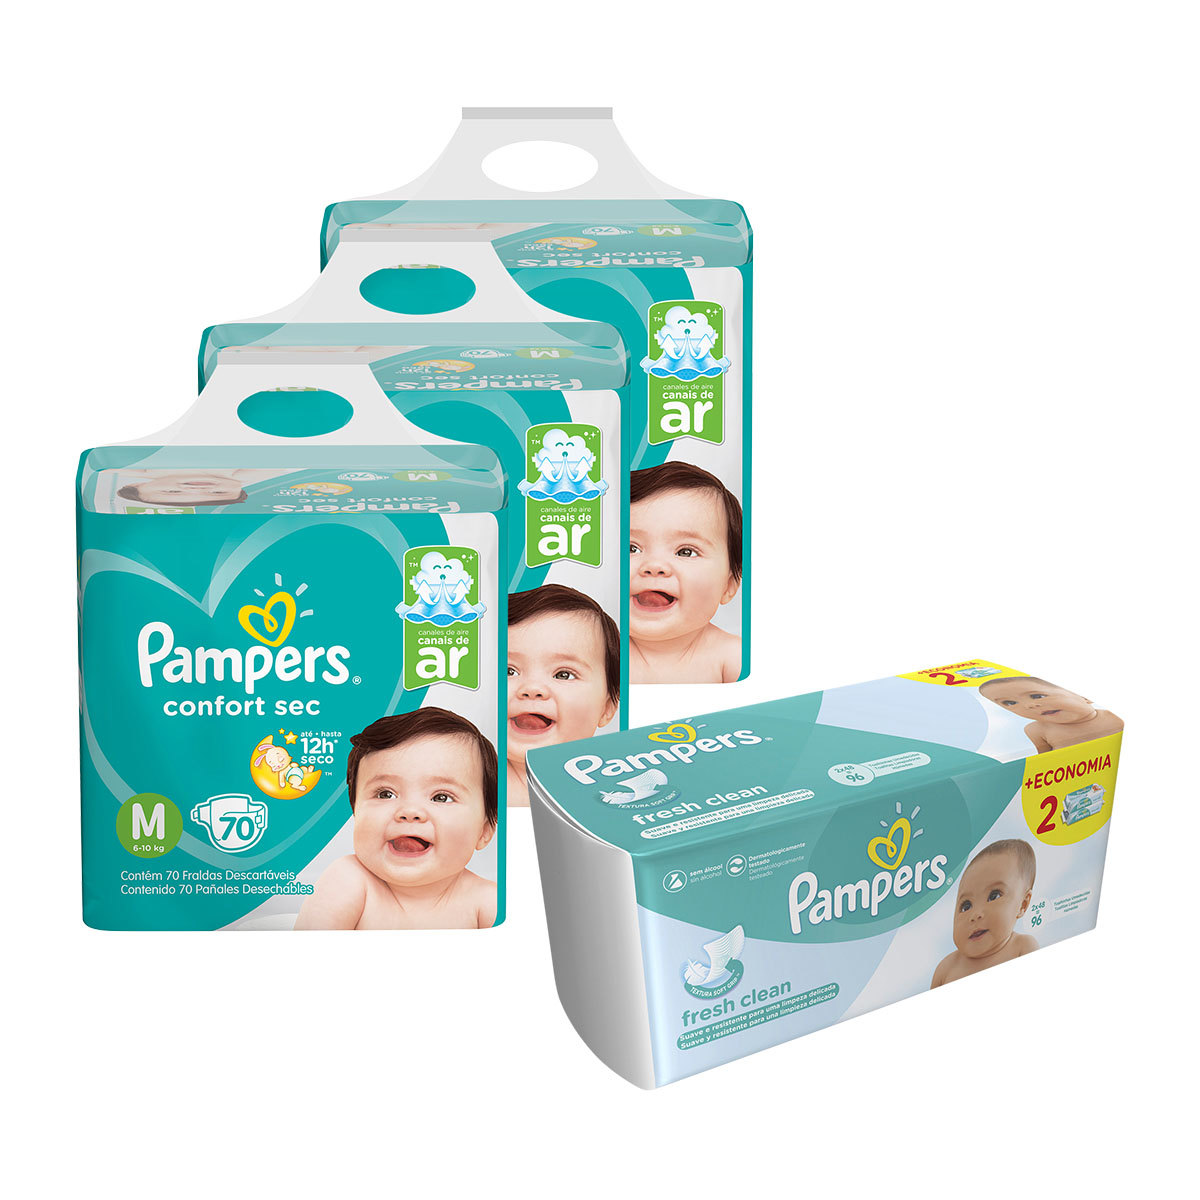 Kit Pampers - Fralda M Confort Sec Super 210 Un + Lenço Umedecido Fresh Clean 96 Un